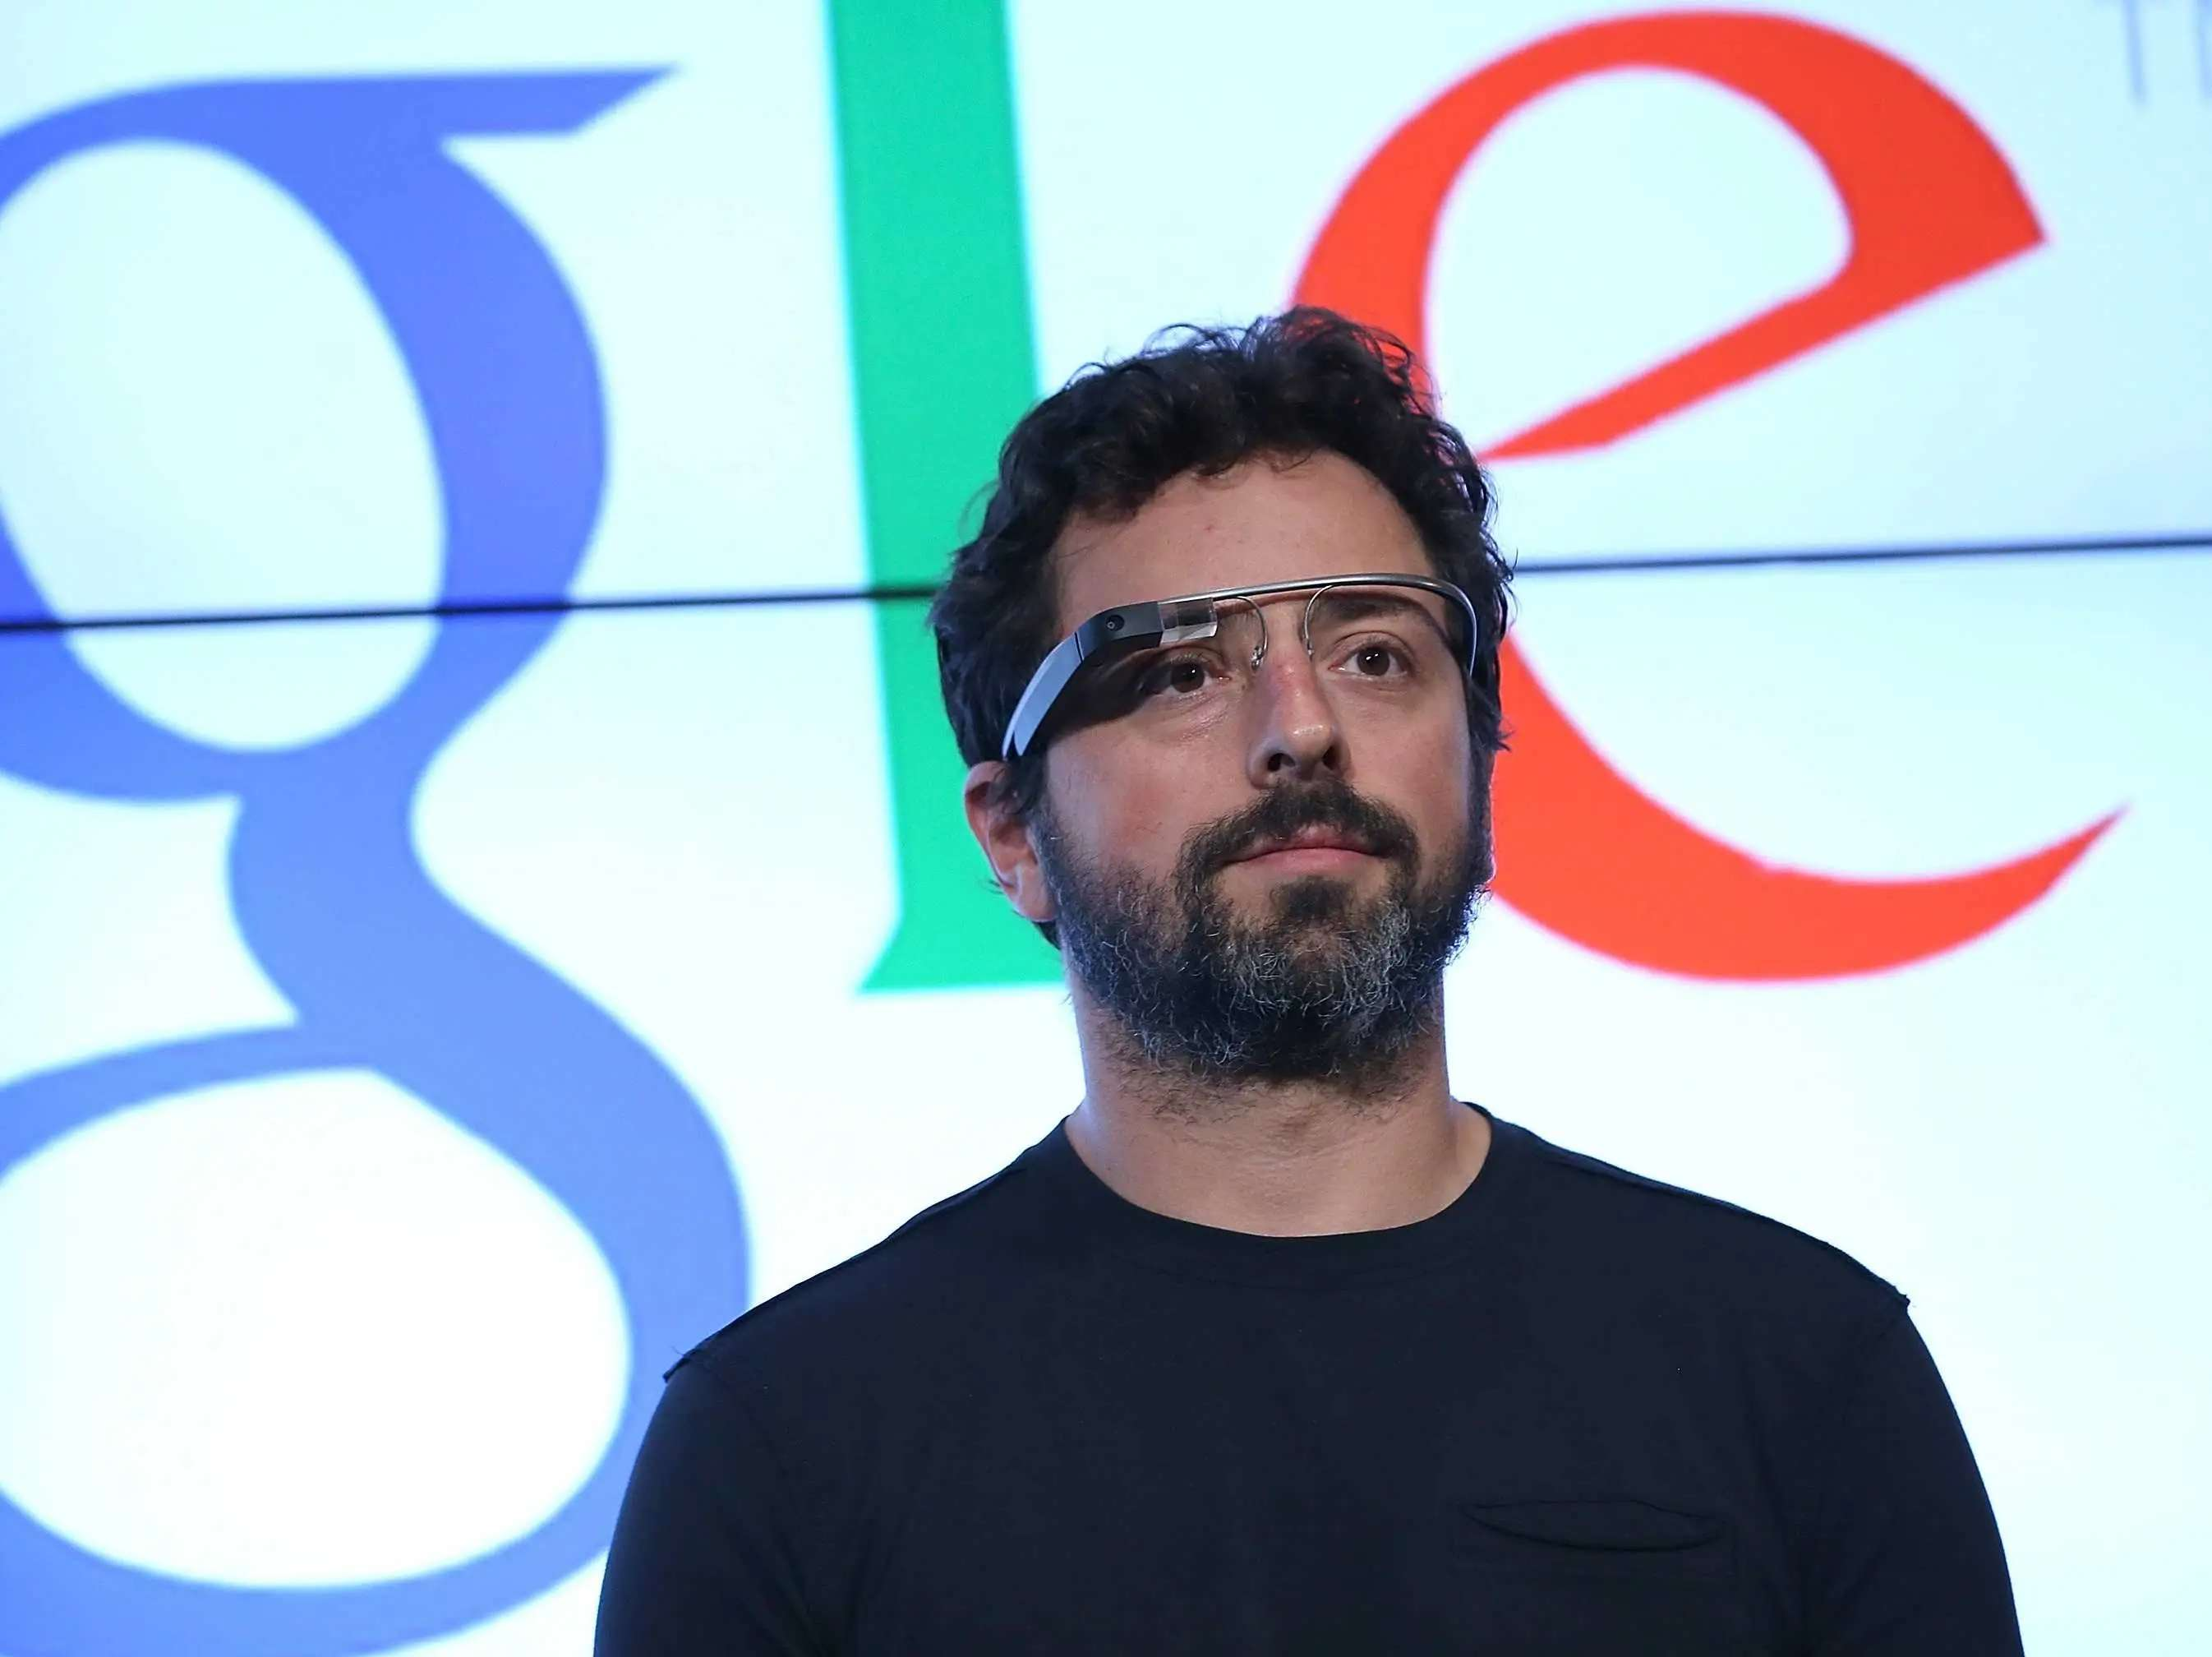 Samsung may also have a Google Glass competitor.